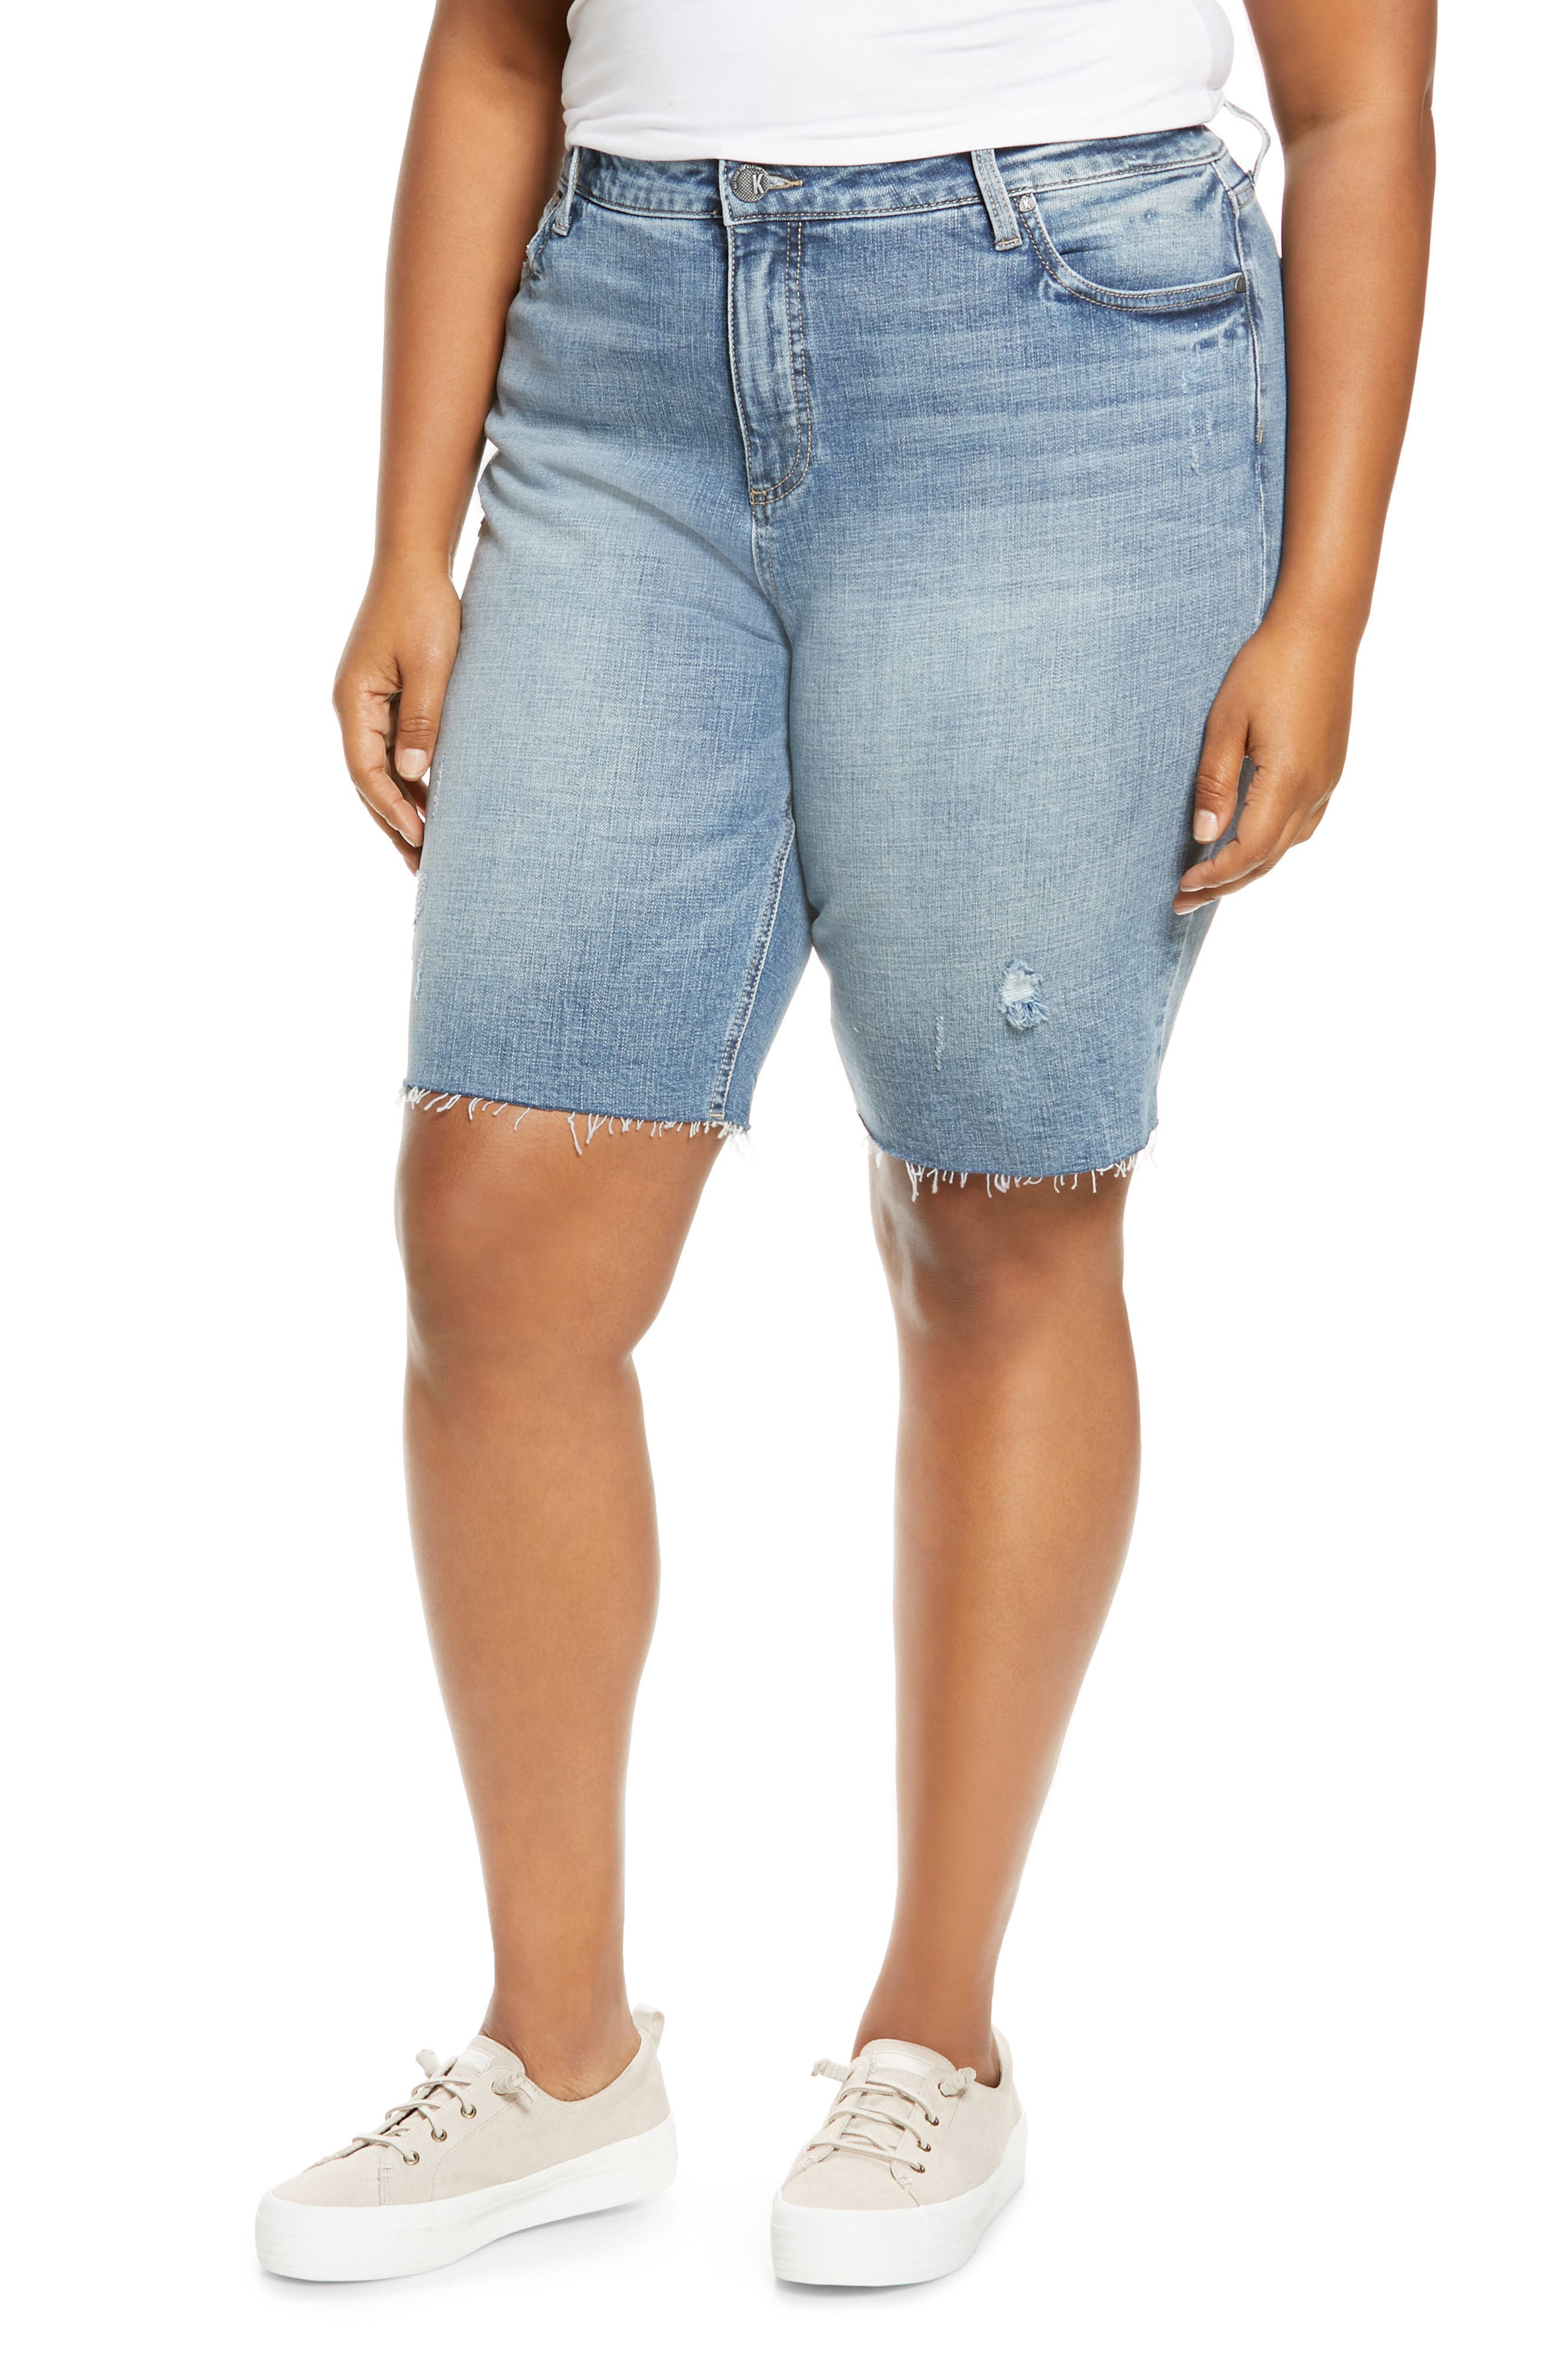 Plus Women's Kut From The Kloth High Waist Bermuda Shorts